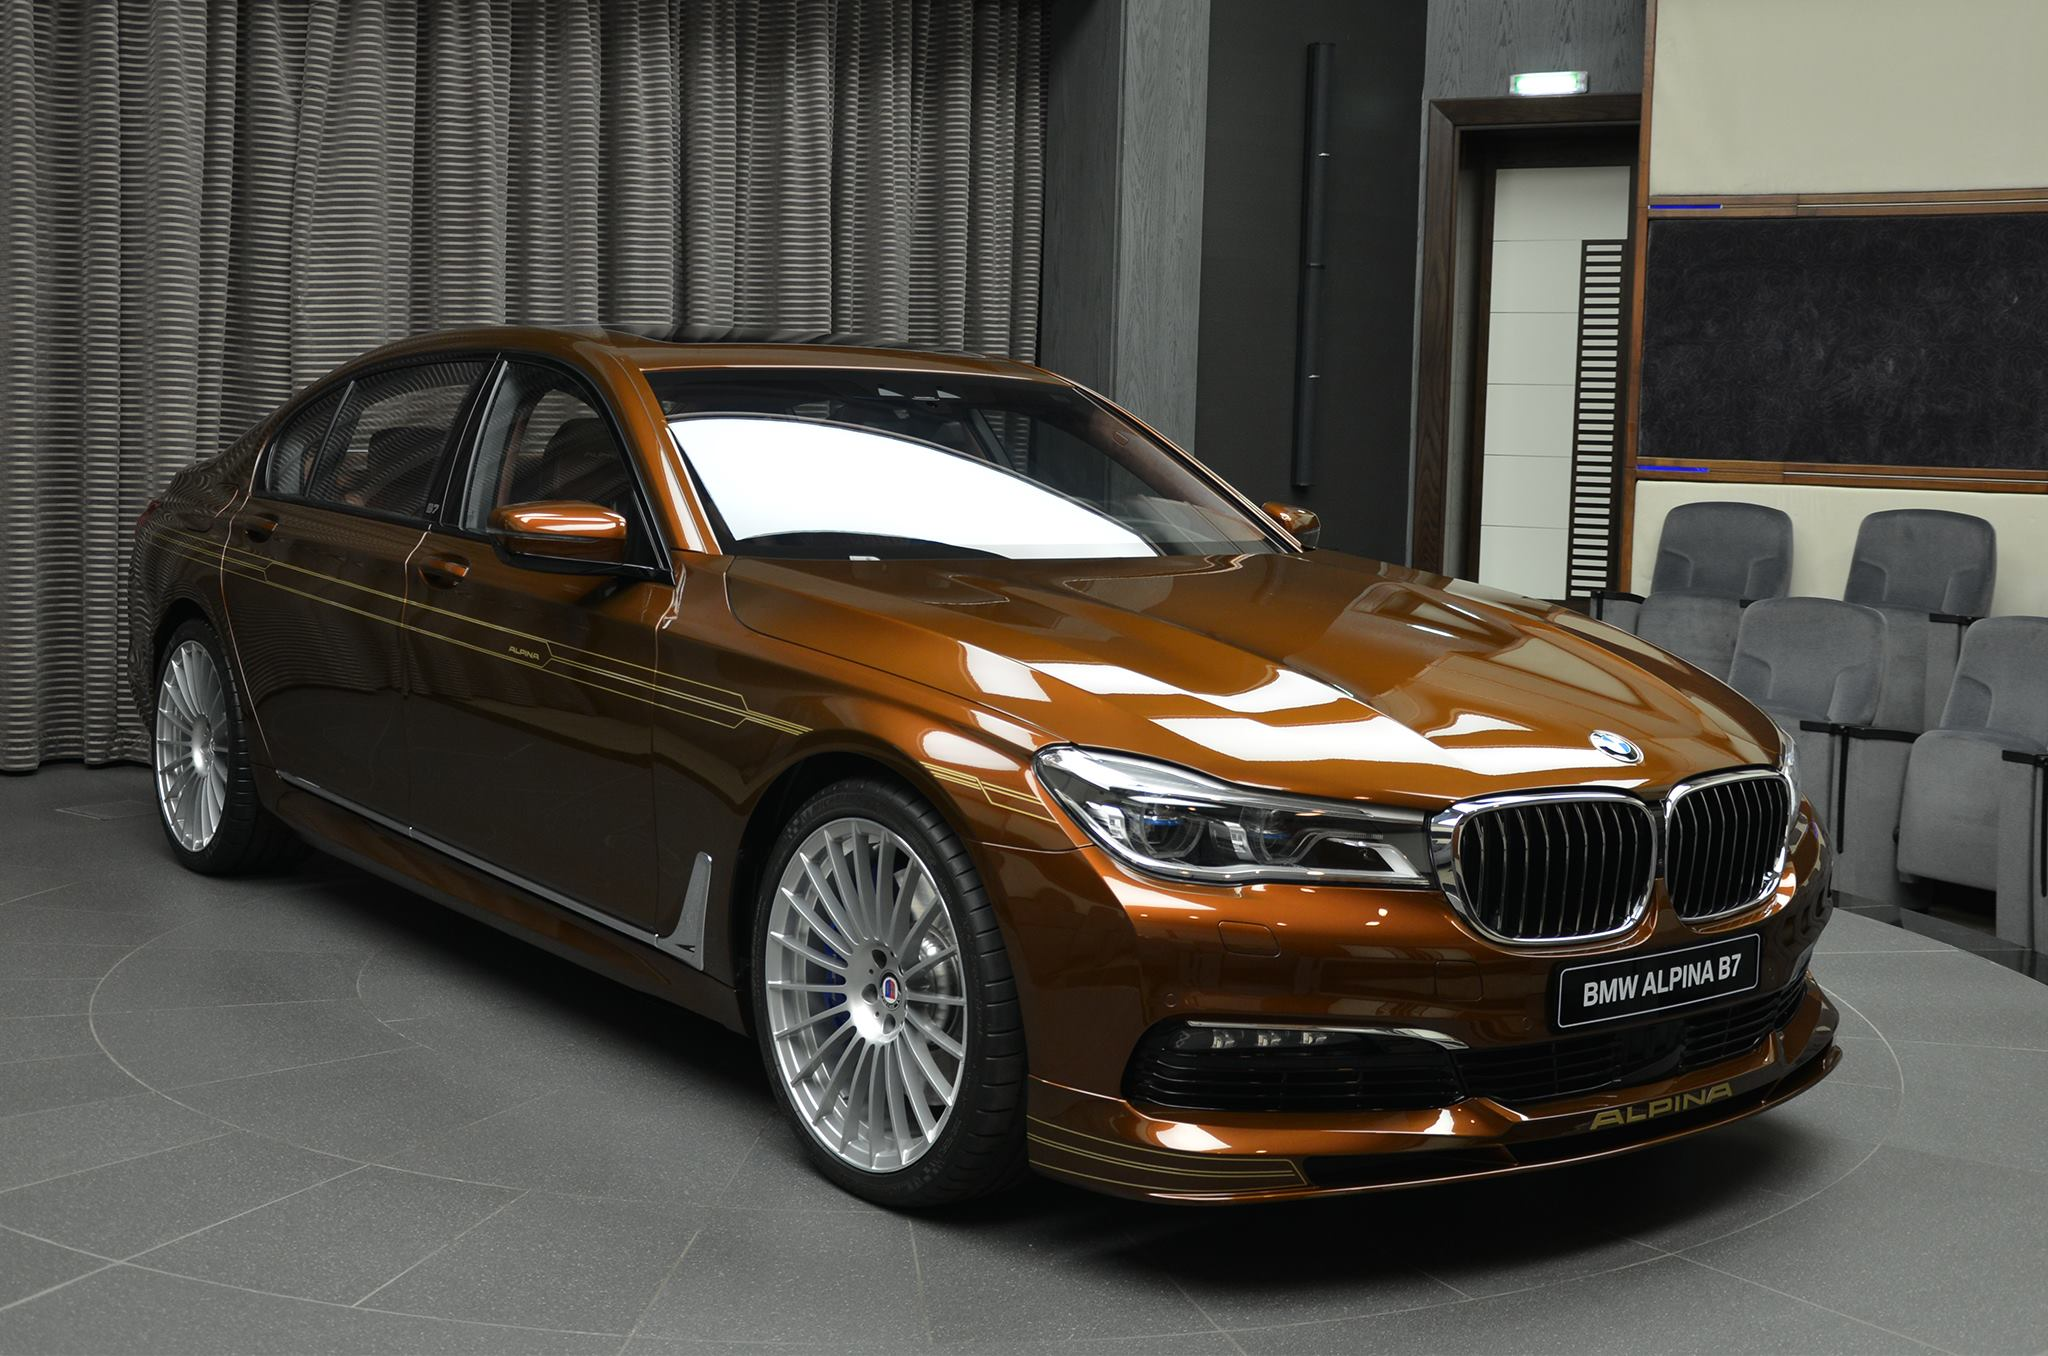 chestnut bronze alpina b7 bi turbo has matching brown interior autoevolution. Black Bedroom Furniture Sets. Home Design Ideas